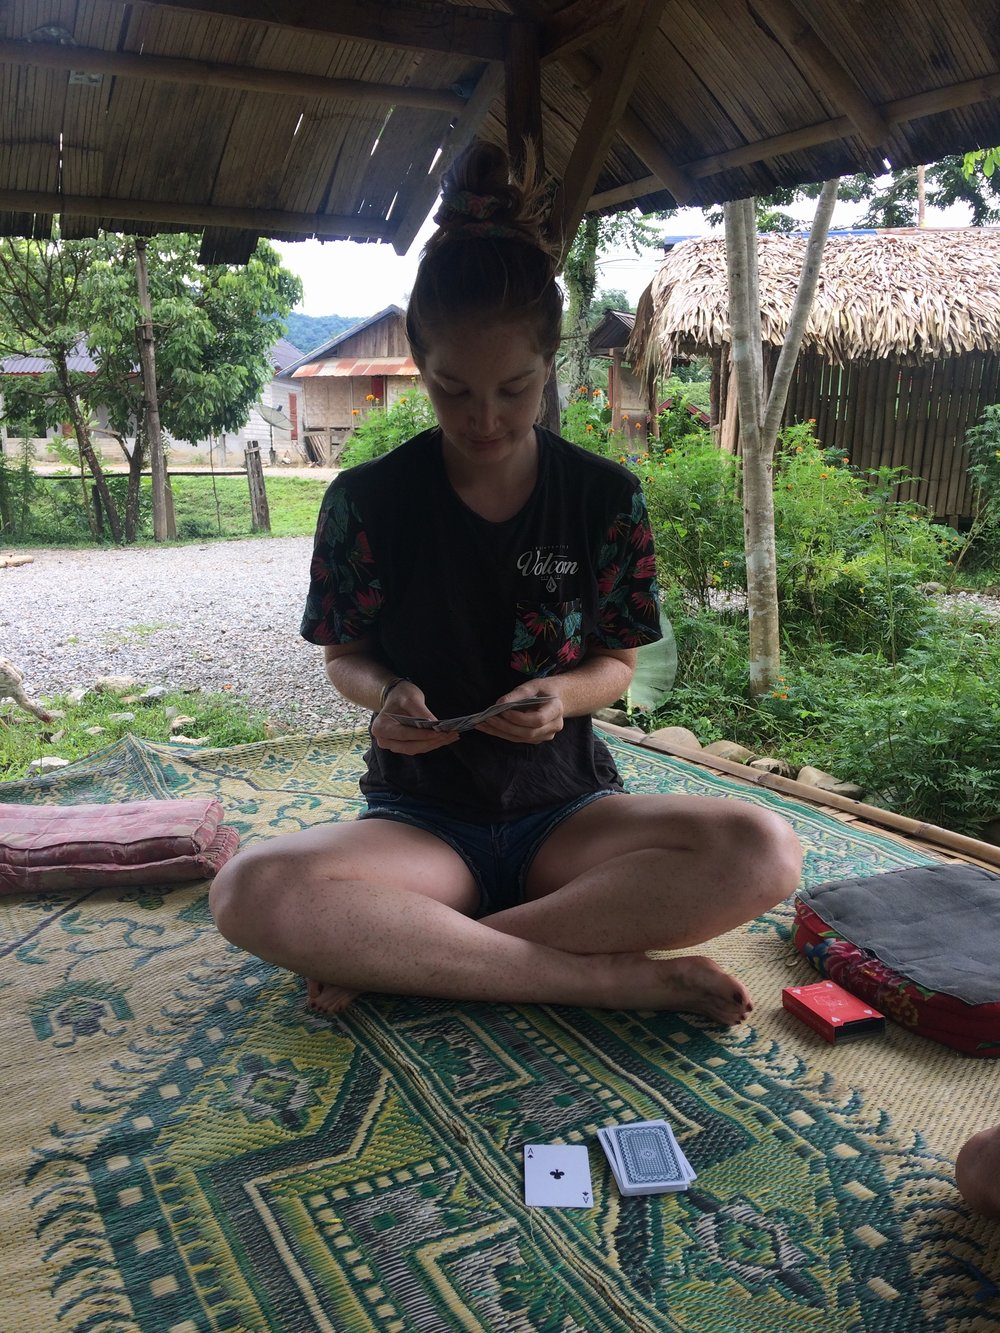 Card games in Laos